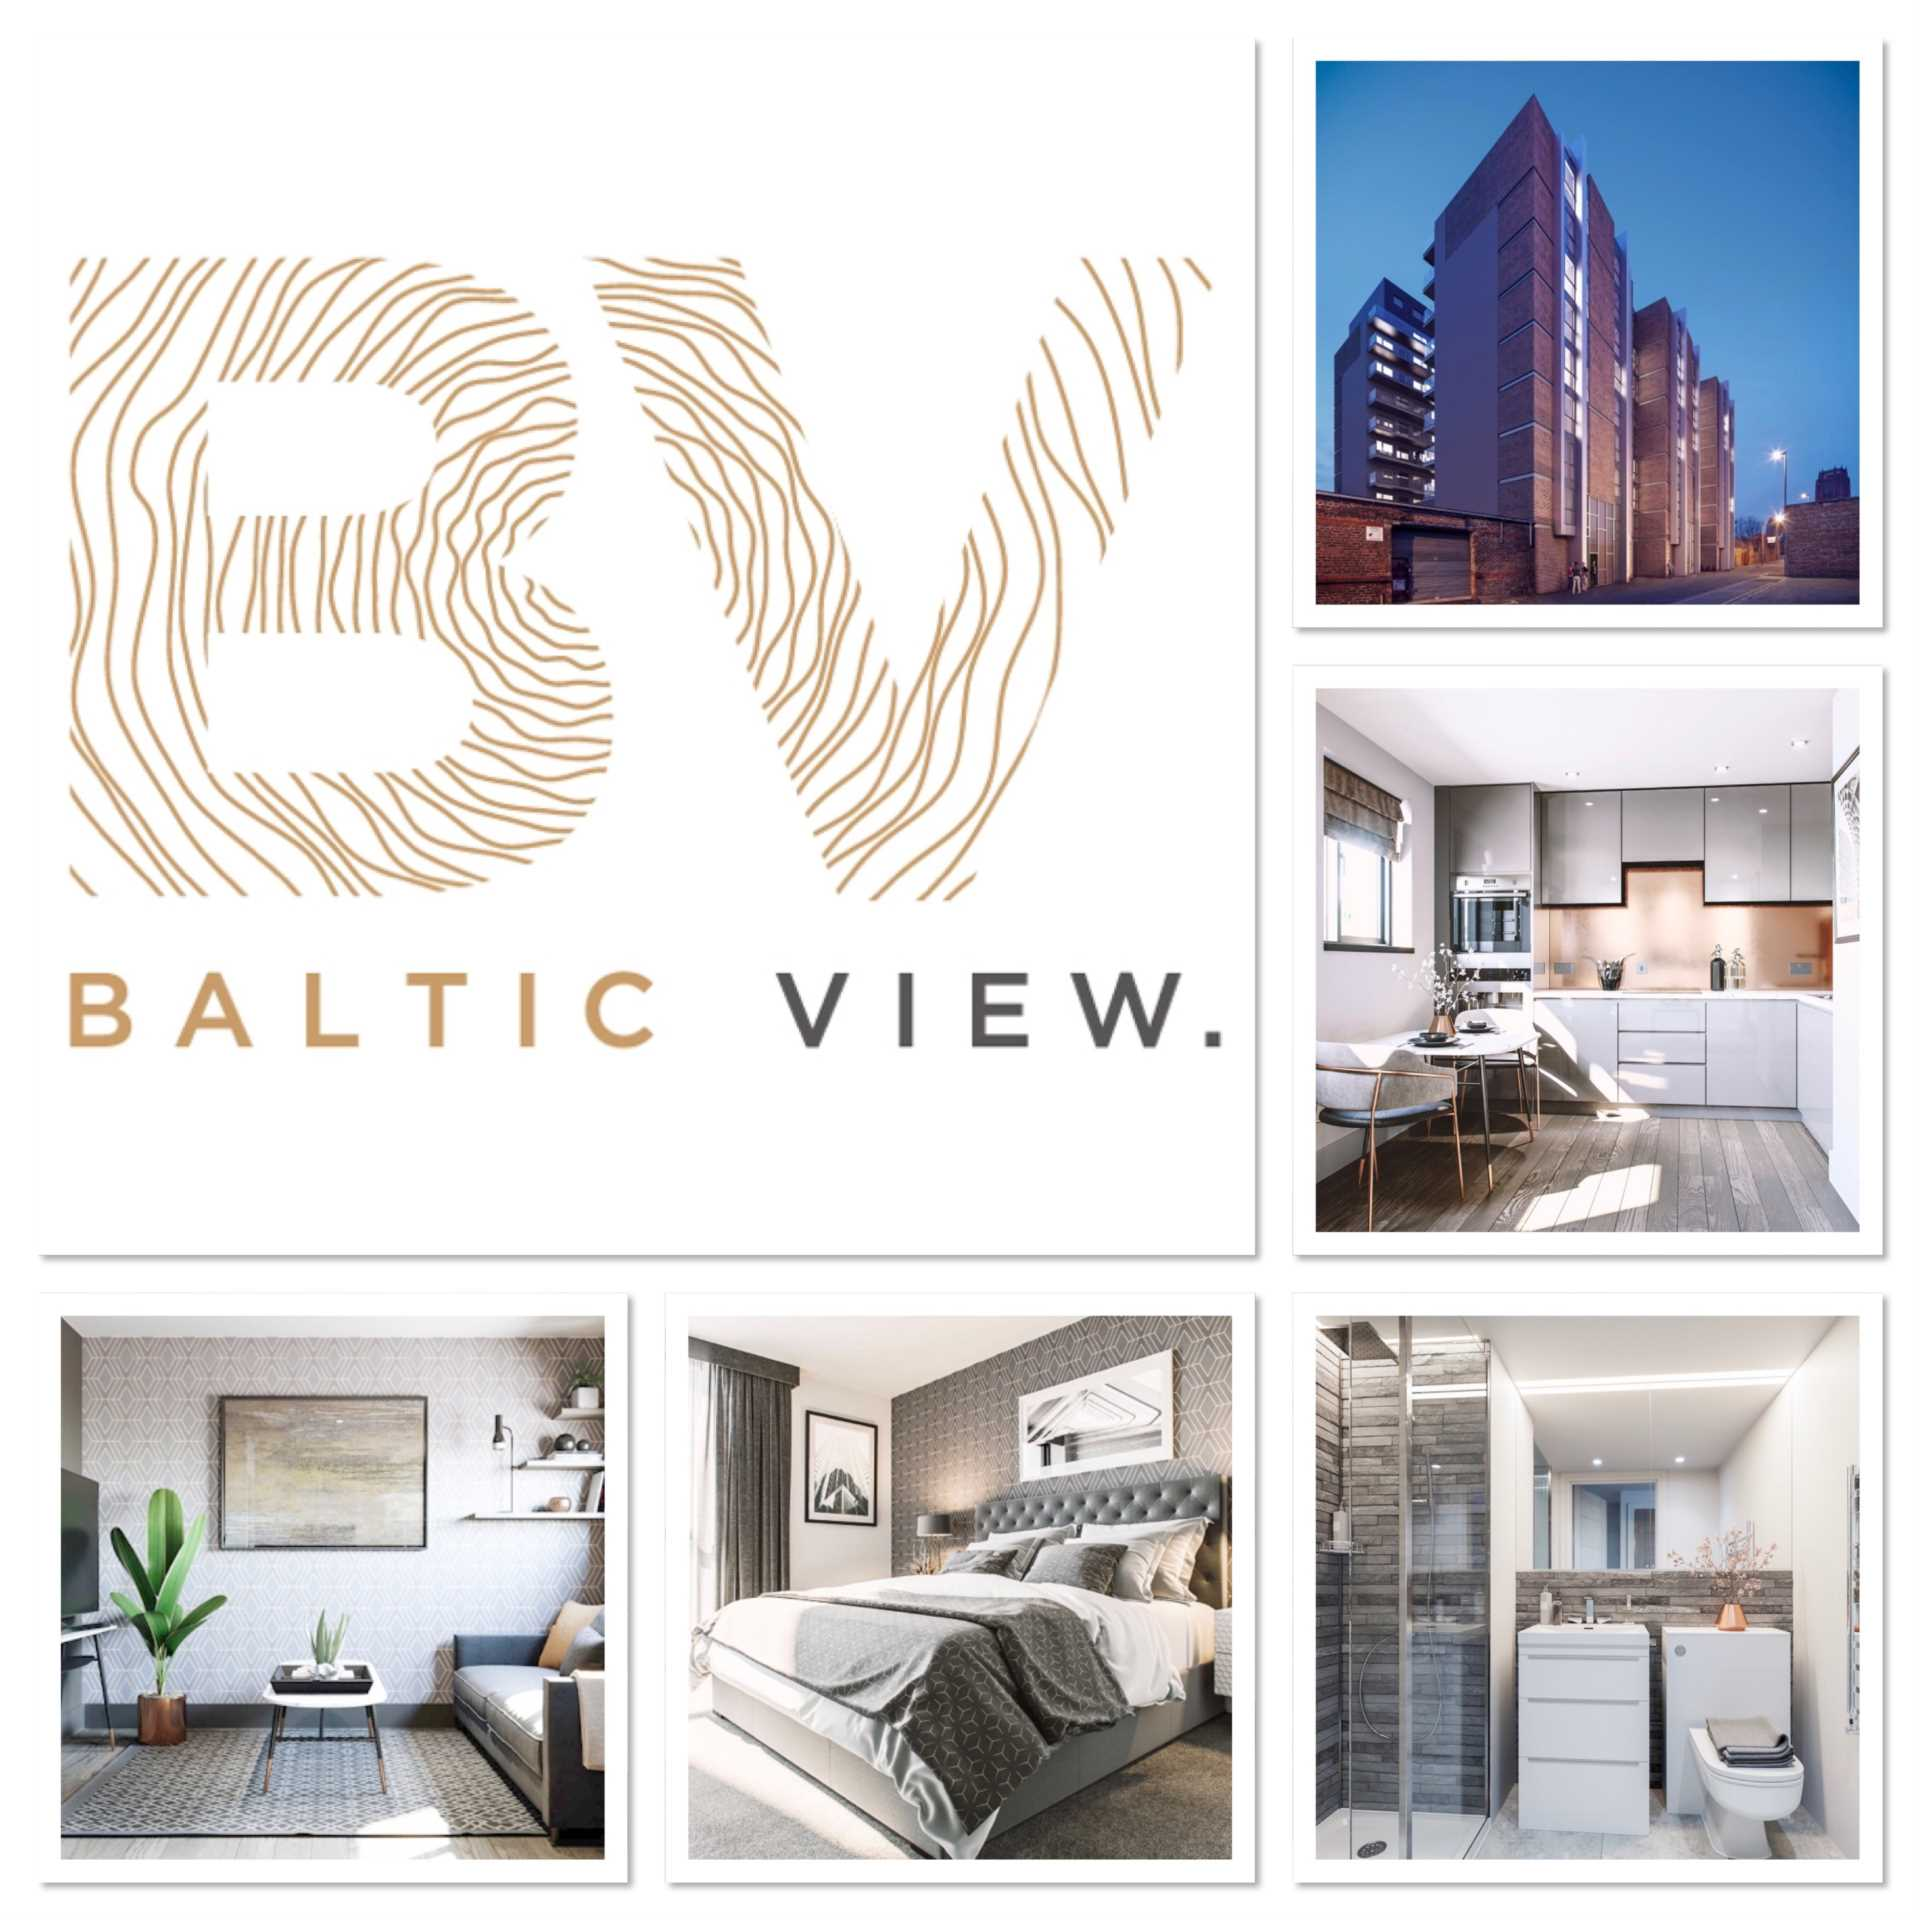 Baltic View